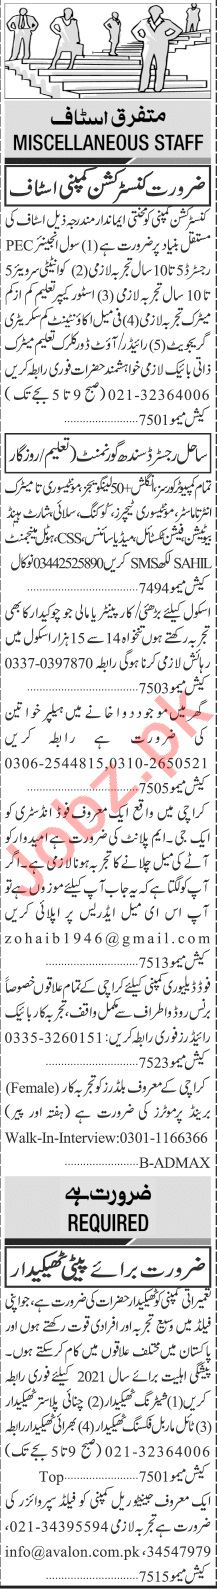 Jang Sunday Classified Ads 27 Dec 2020 for Multiple Staff